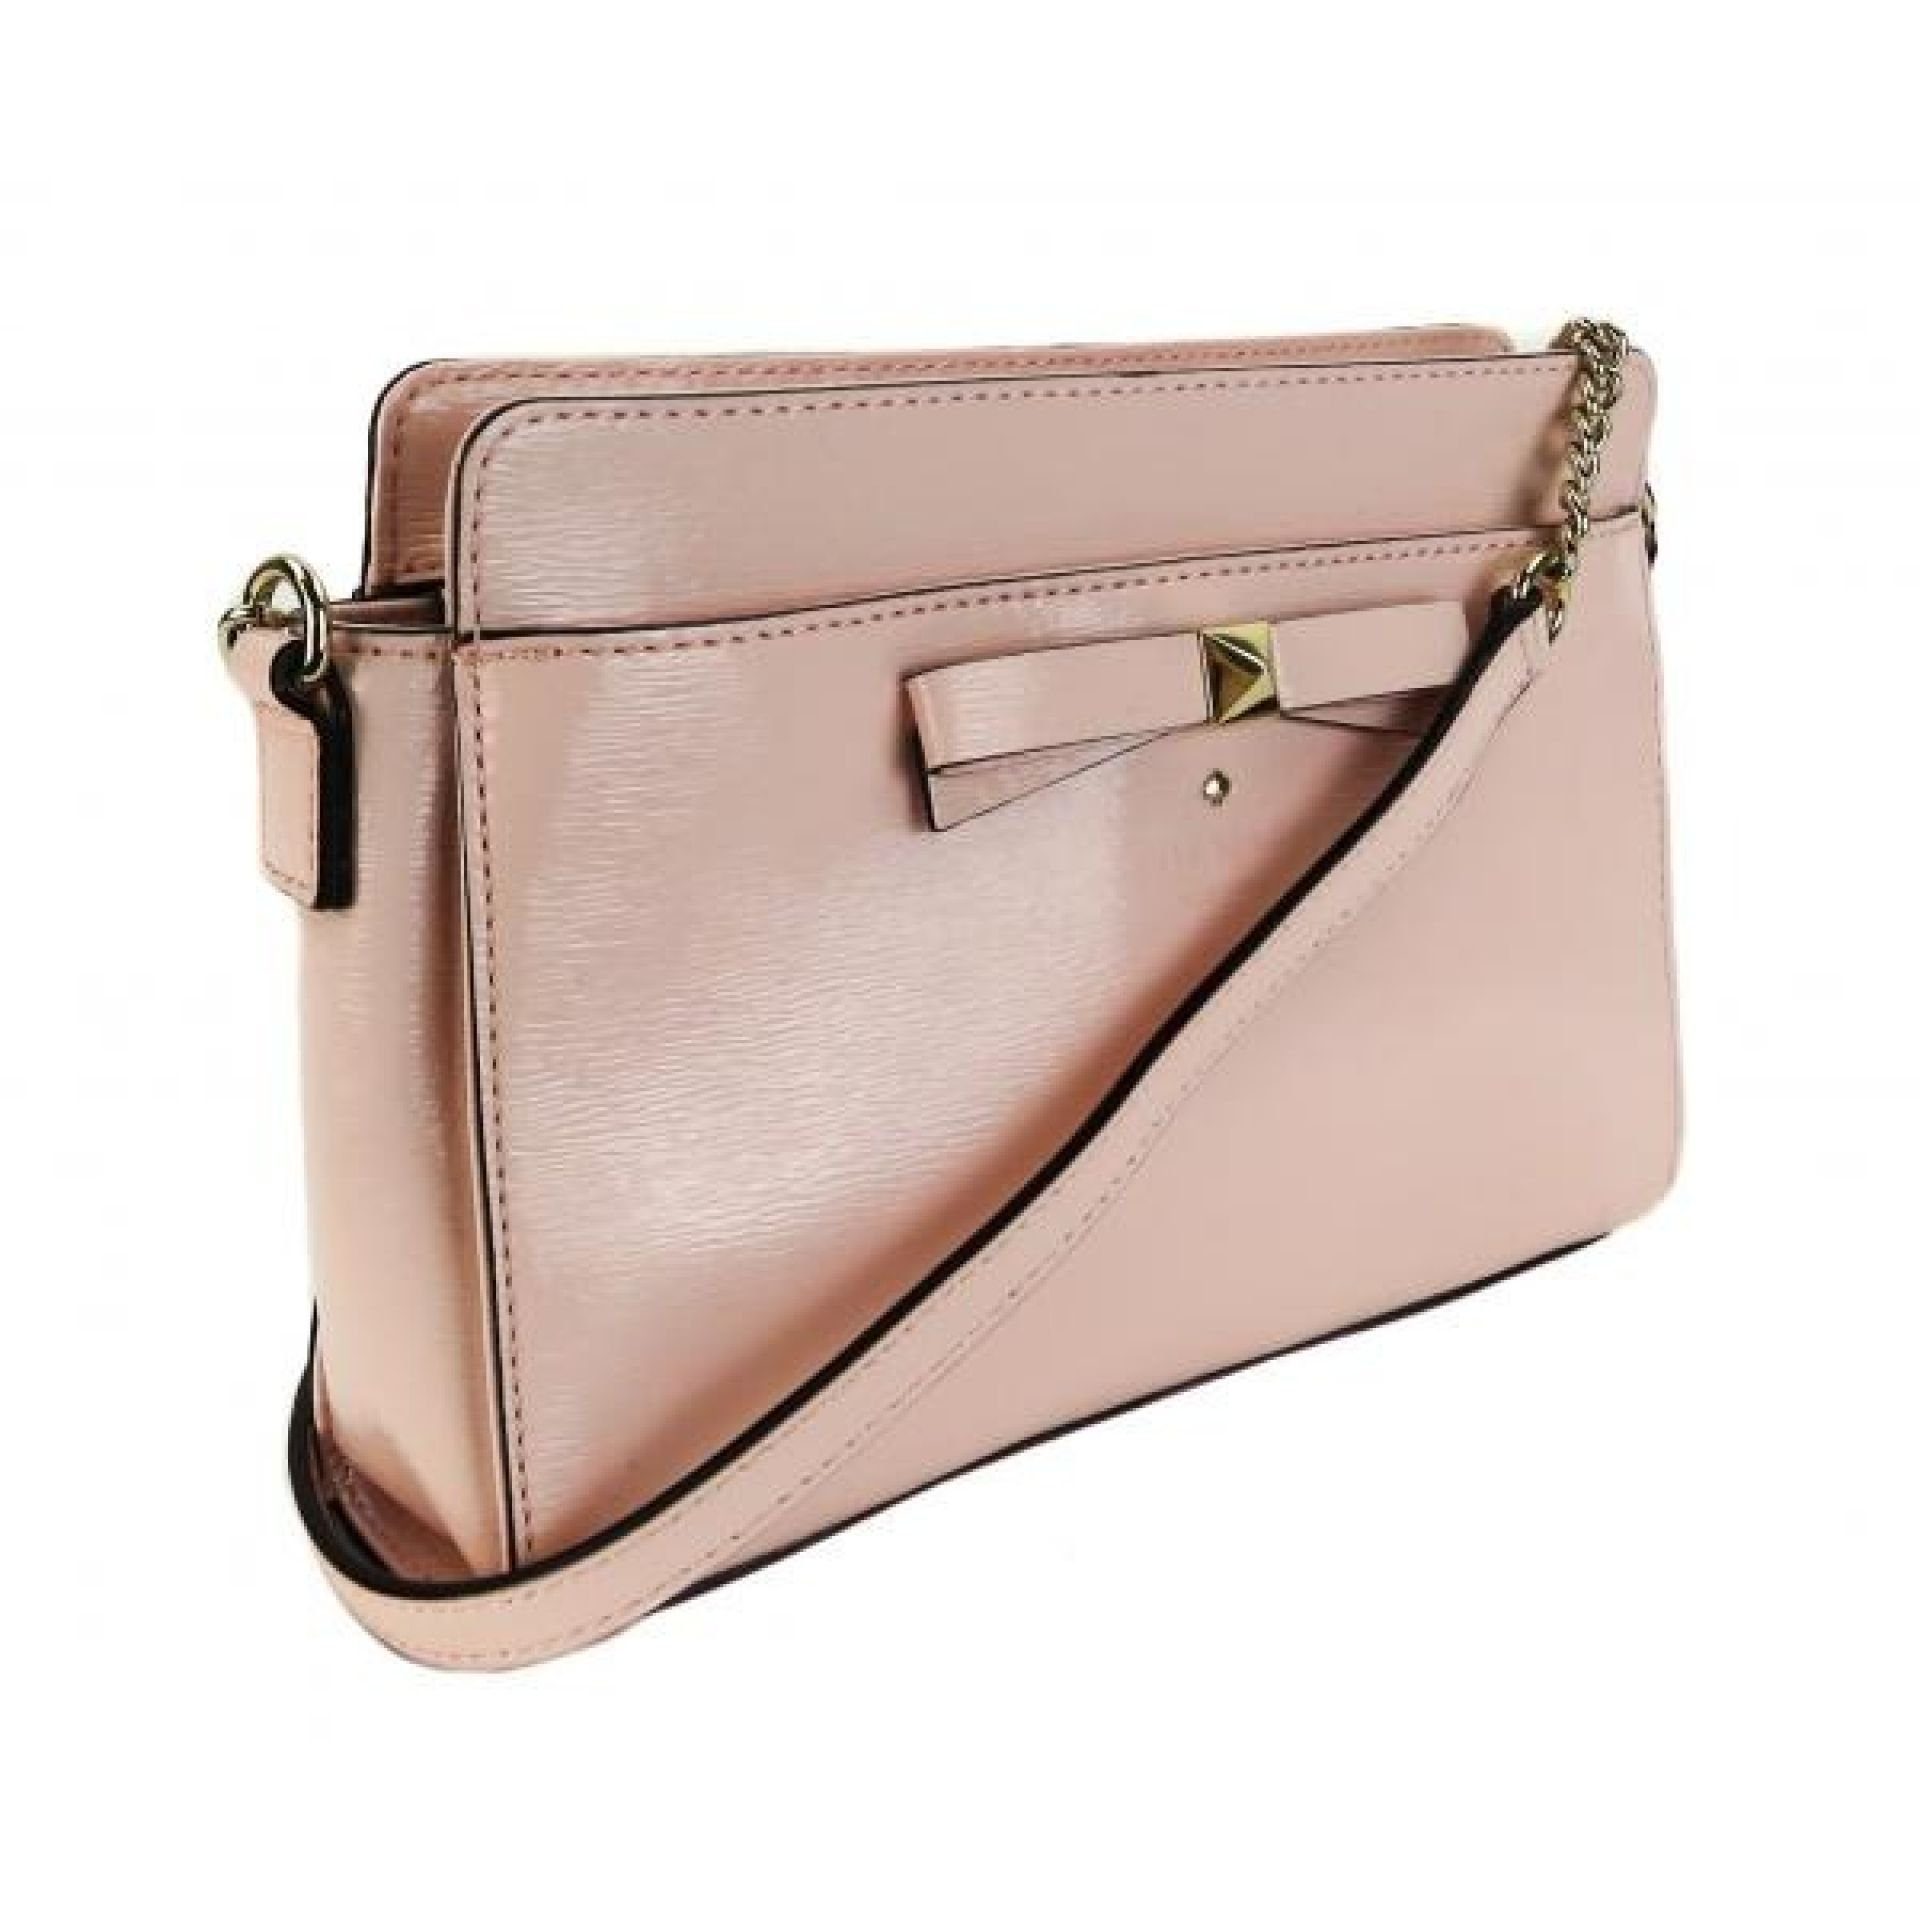 Kate Spade Pink Patent Leather Beacon Court Angelica Crossbody Bag